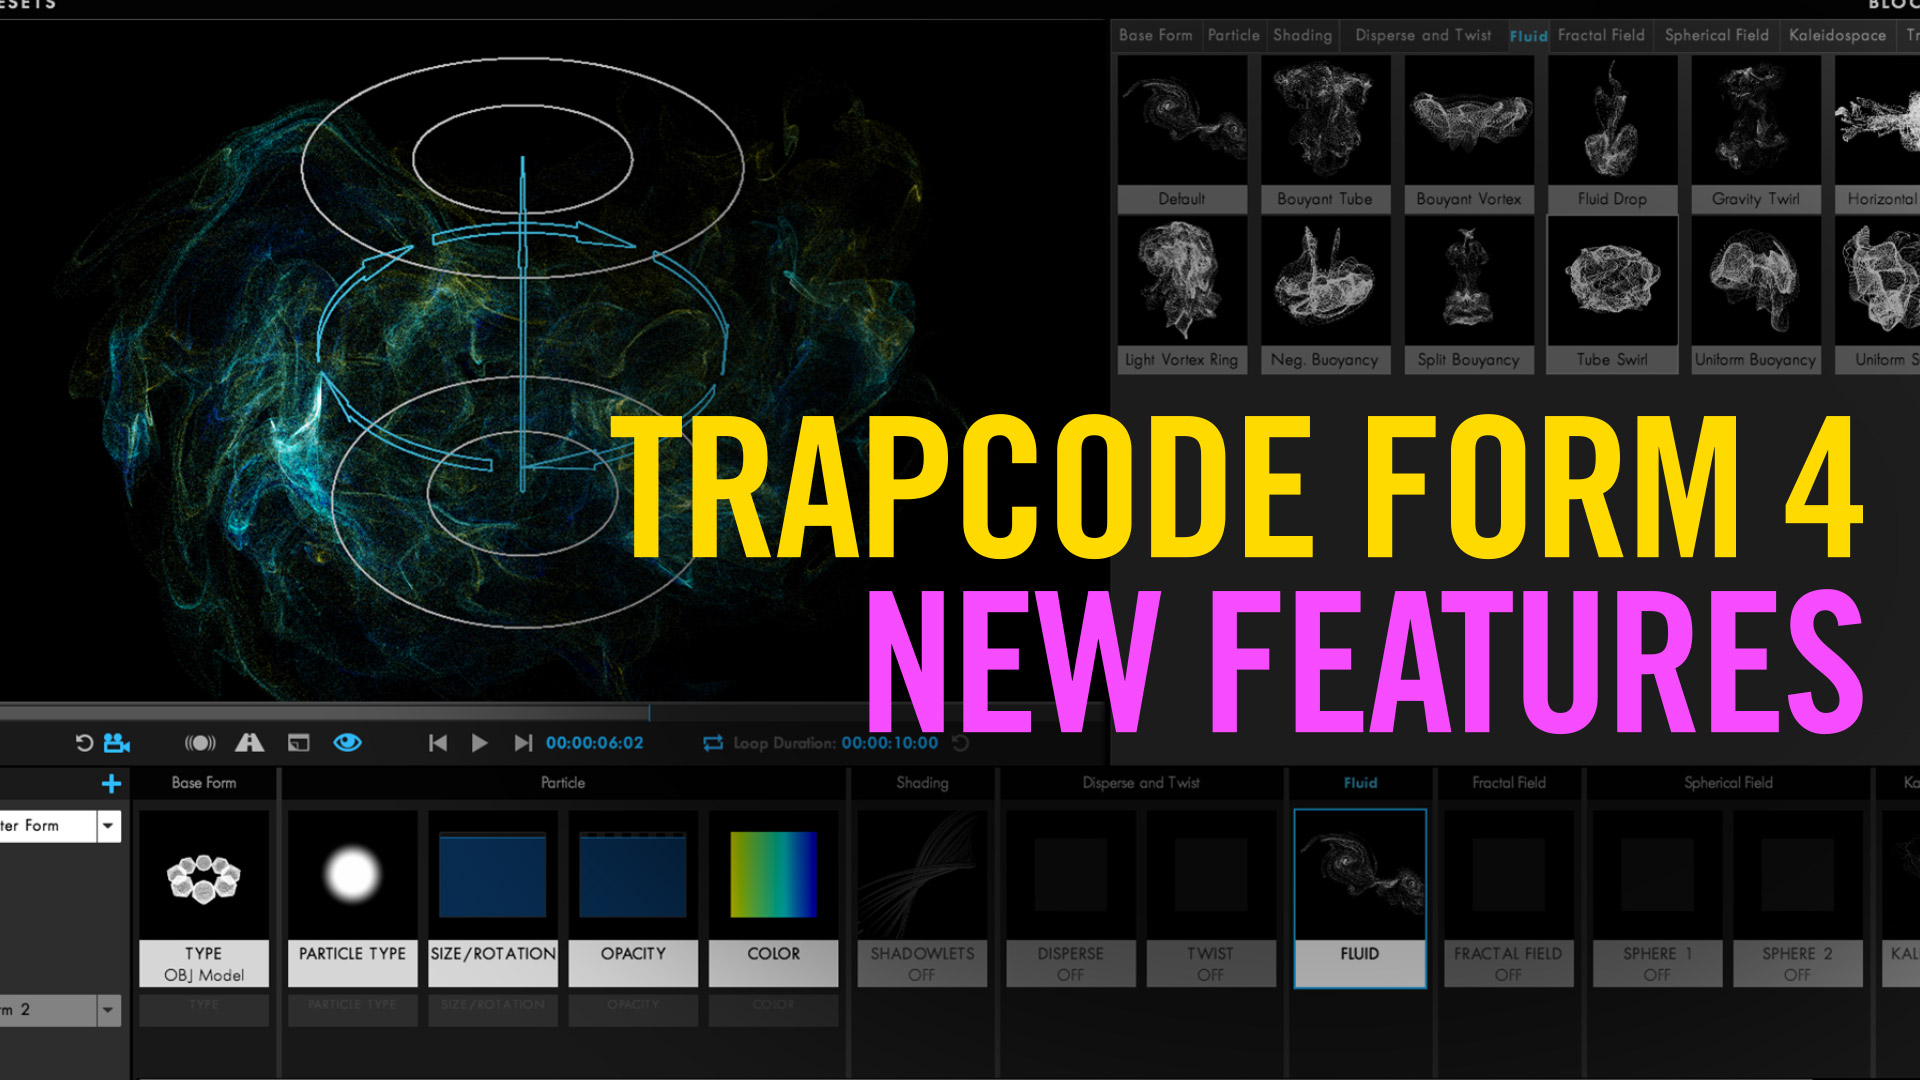 Trapcode Form 4 - New Features